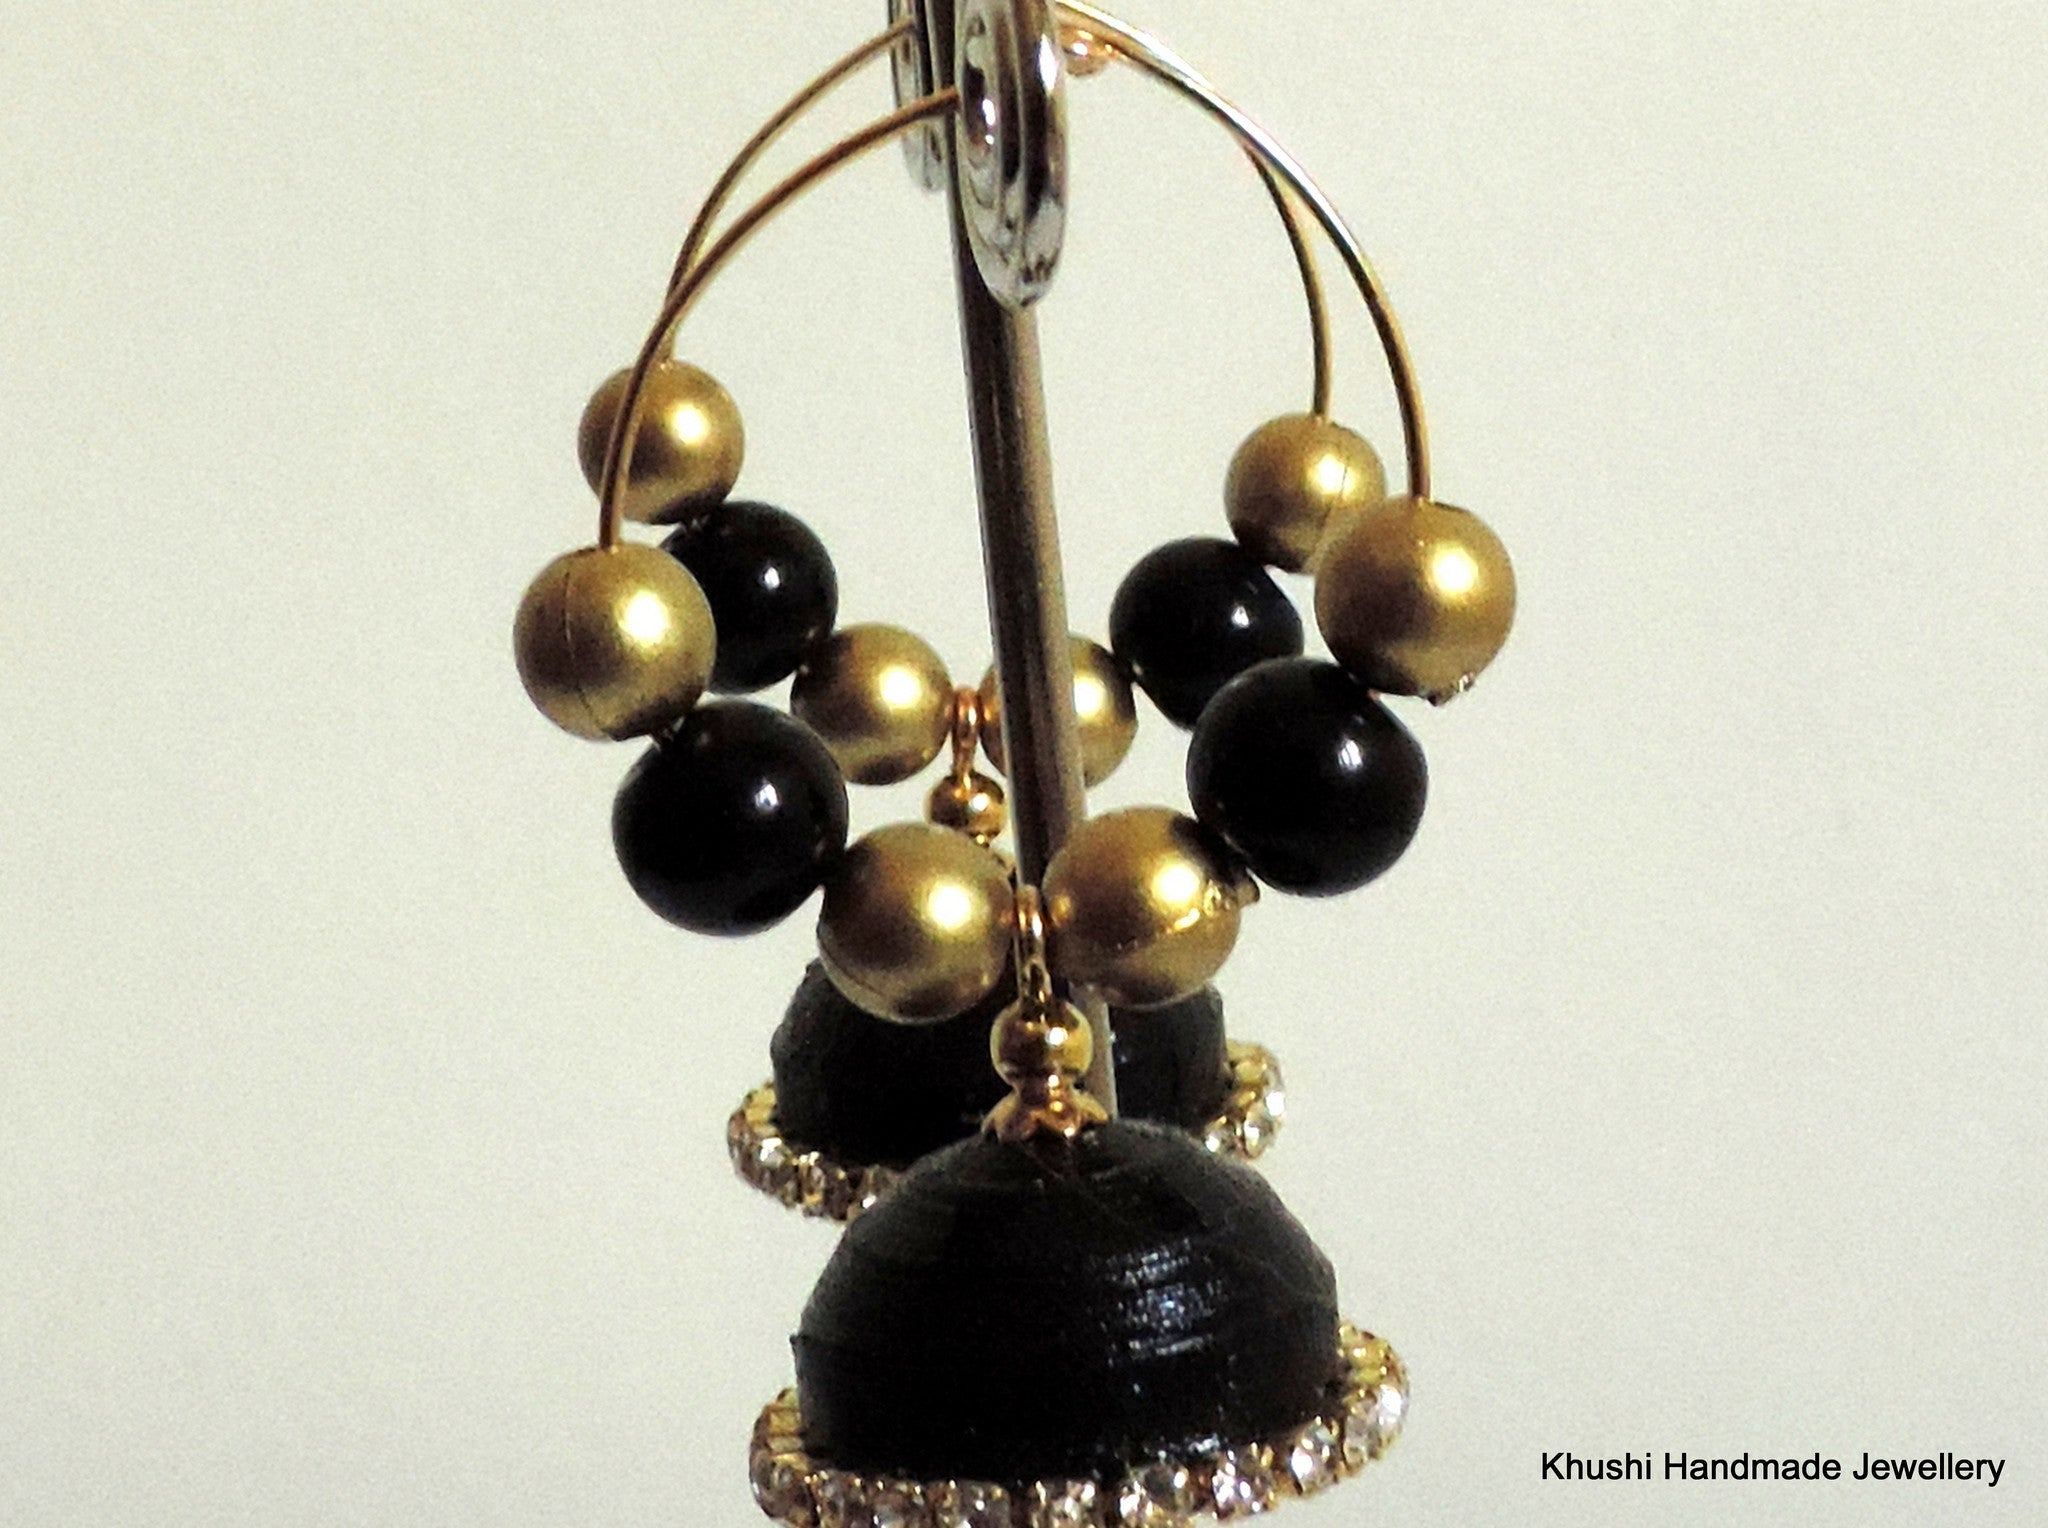 Jhumkas in black edged with white stone! - Khushi Handmade Jewellery